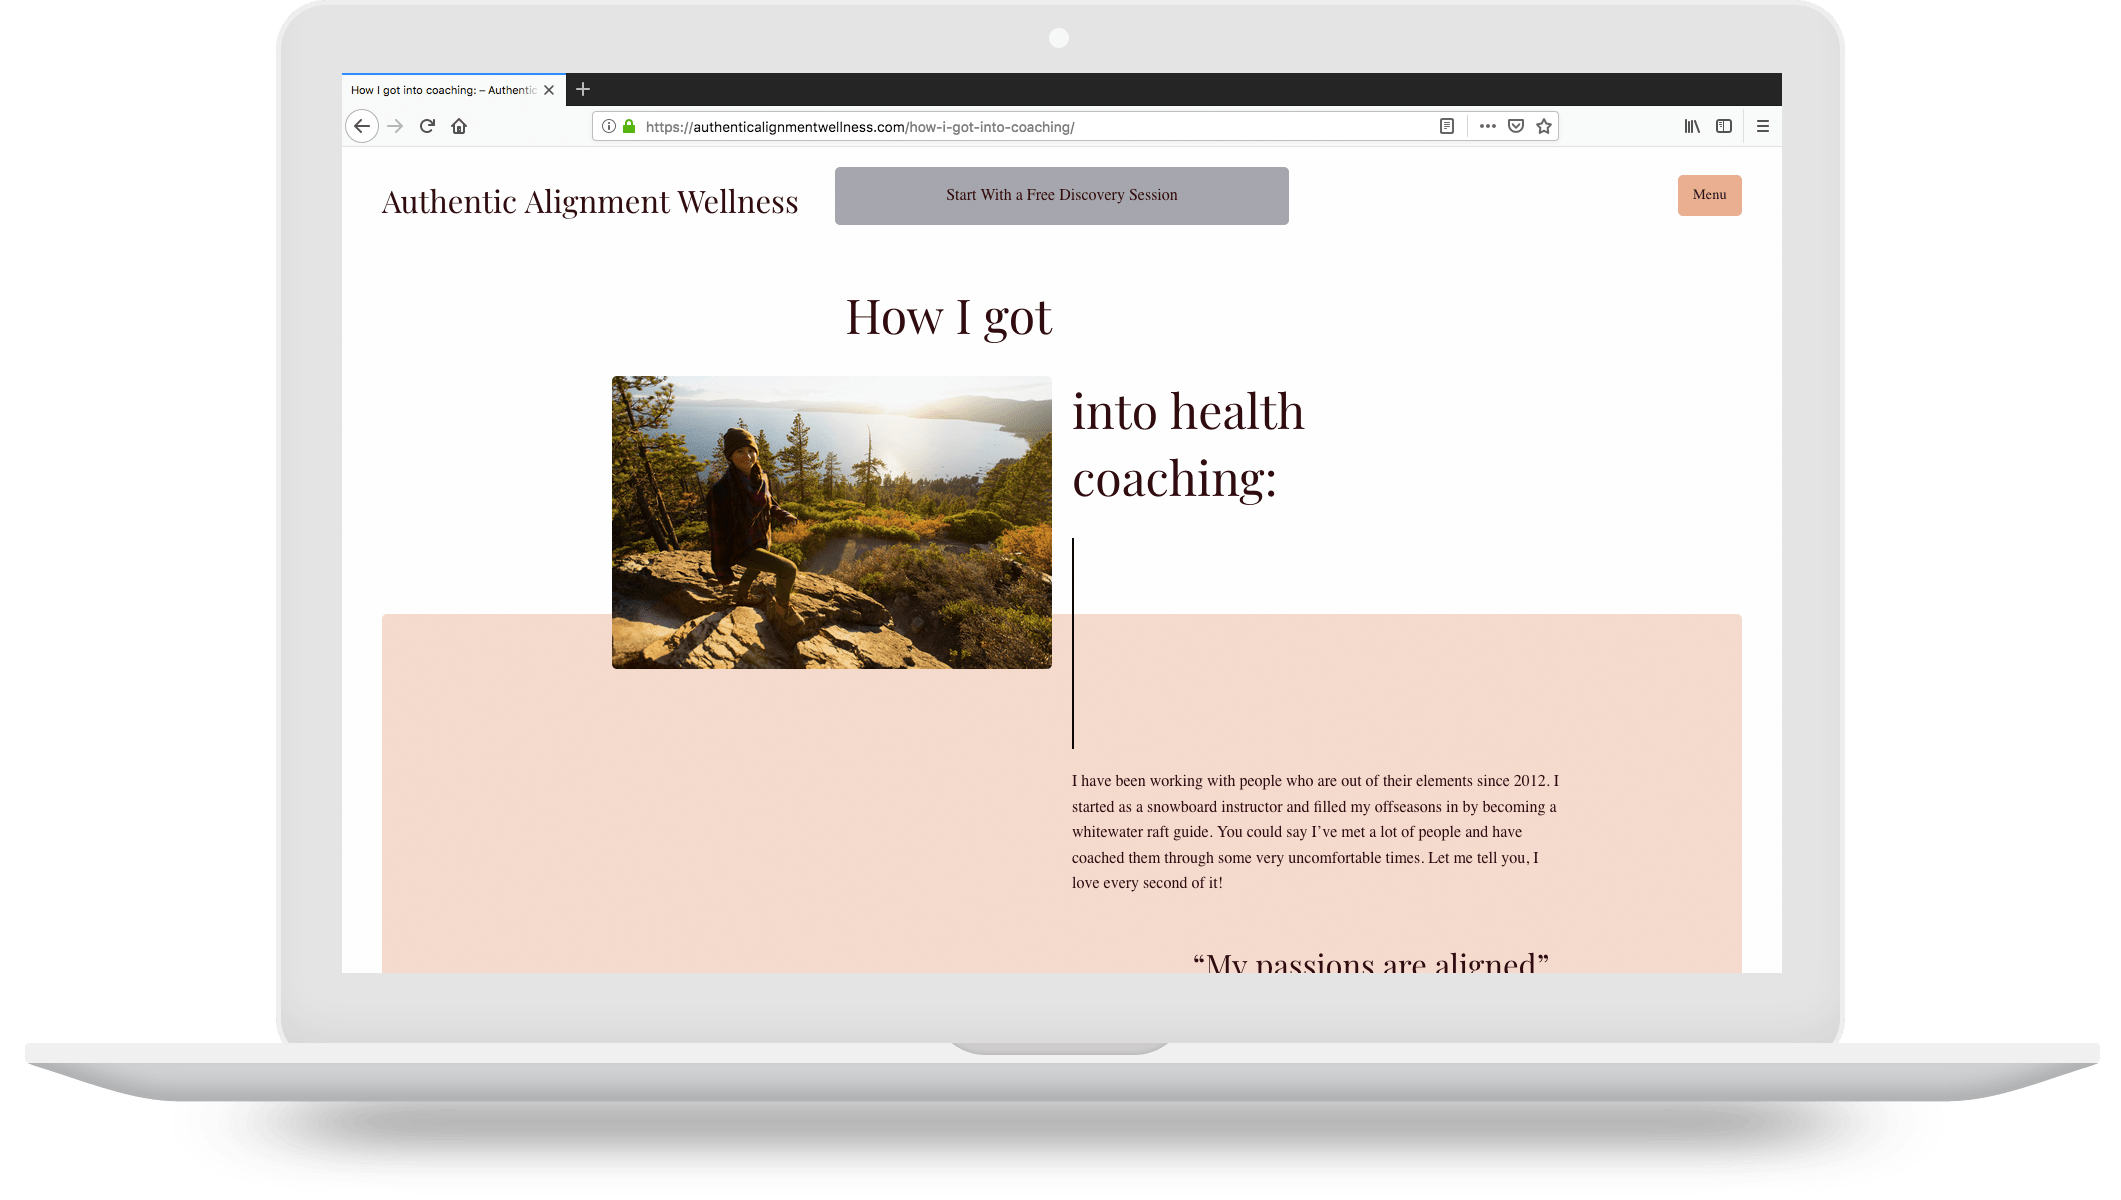 authentic alignment wellness website running on a macbook